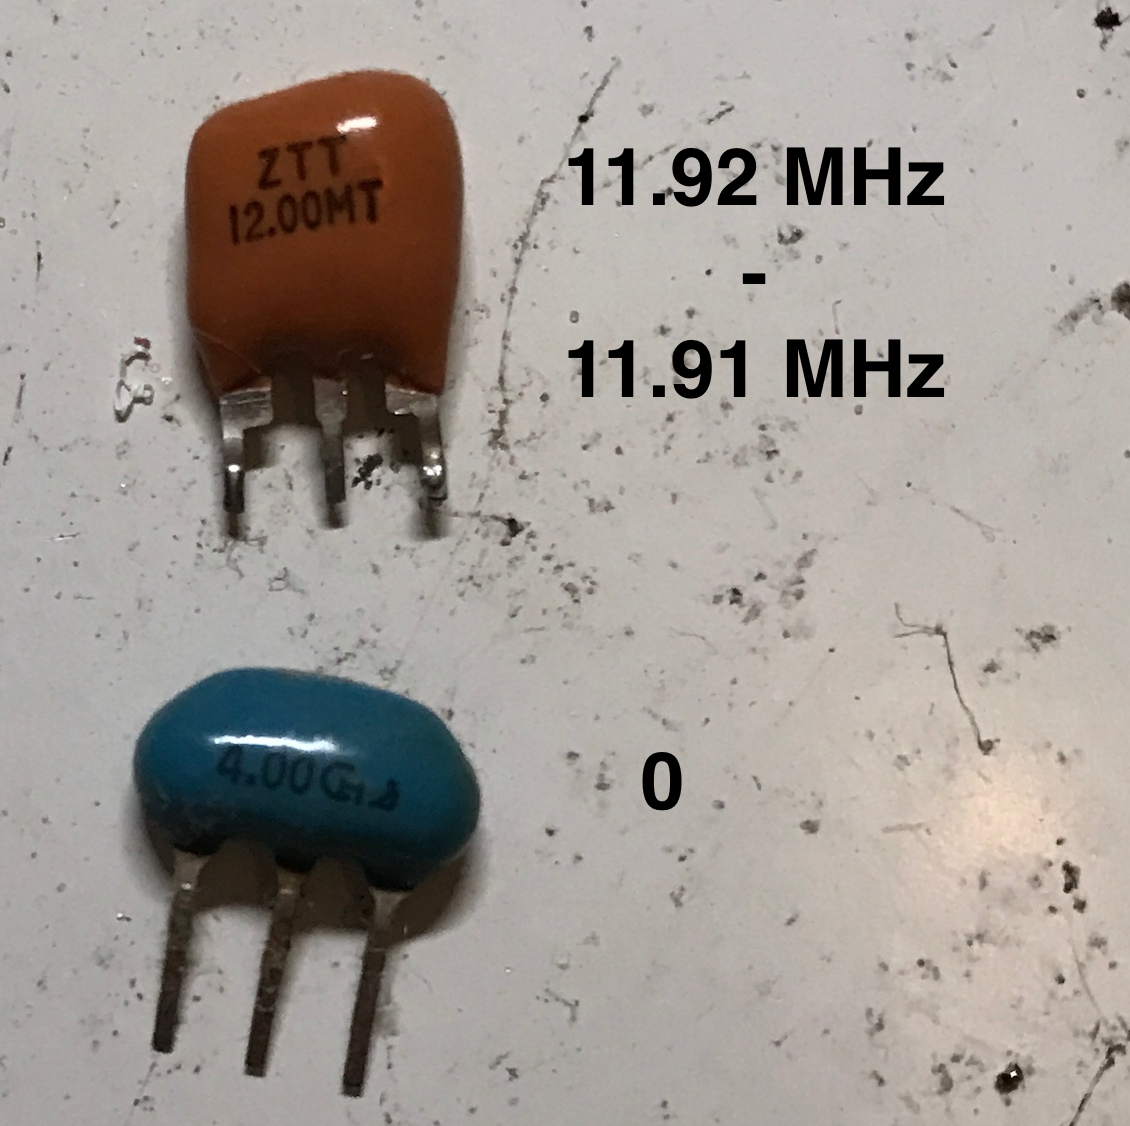 Crystal Oscillator Tester Frequency Counter Kit Review 9v Battery Eliminator Electronic Circuits Kits Doityourself I Tested Two Ceramic Resonators As Follows Note Center Lead Is Ground